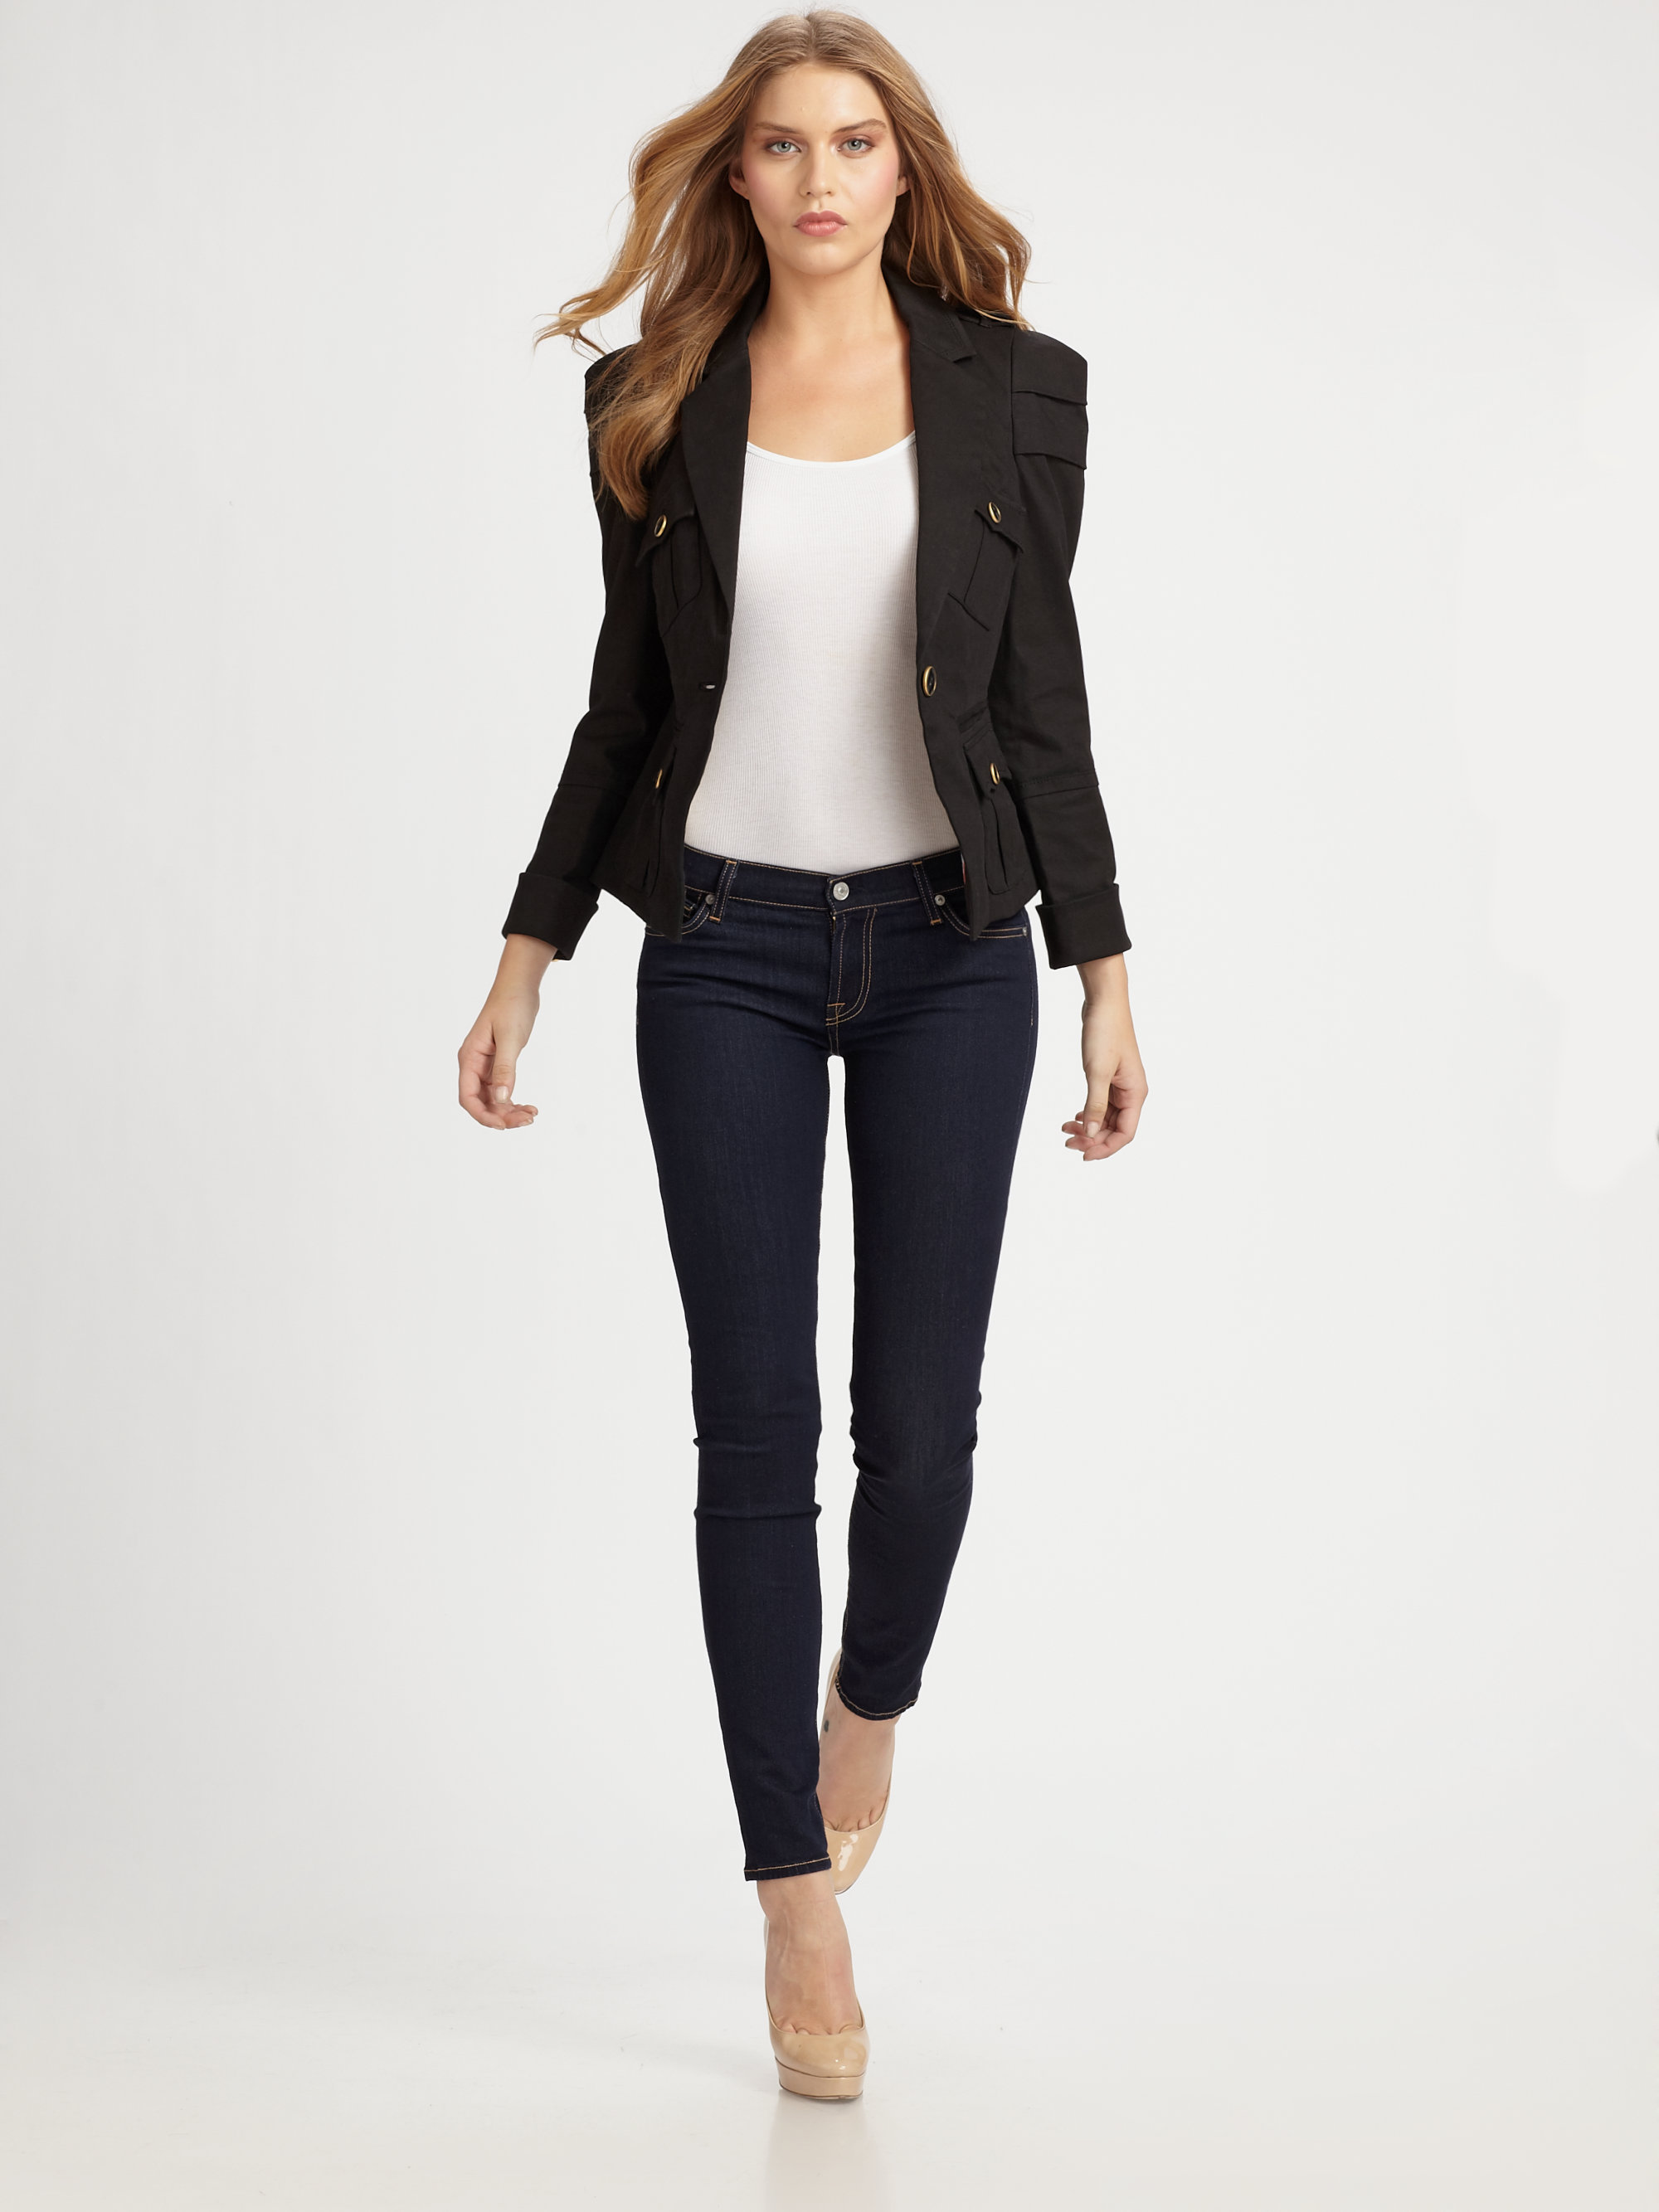 business casual dress code women photo - 1